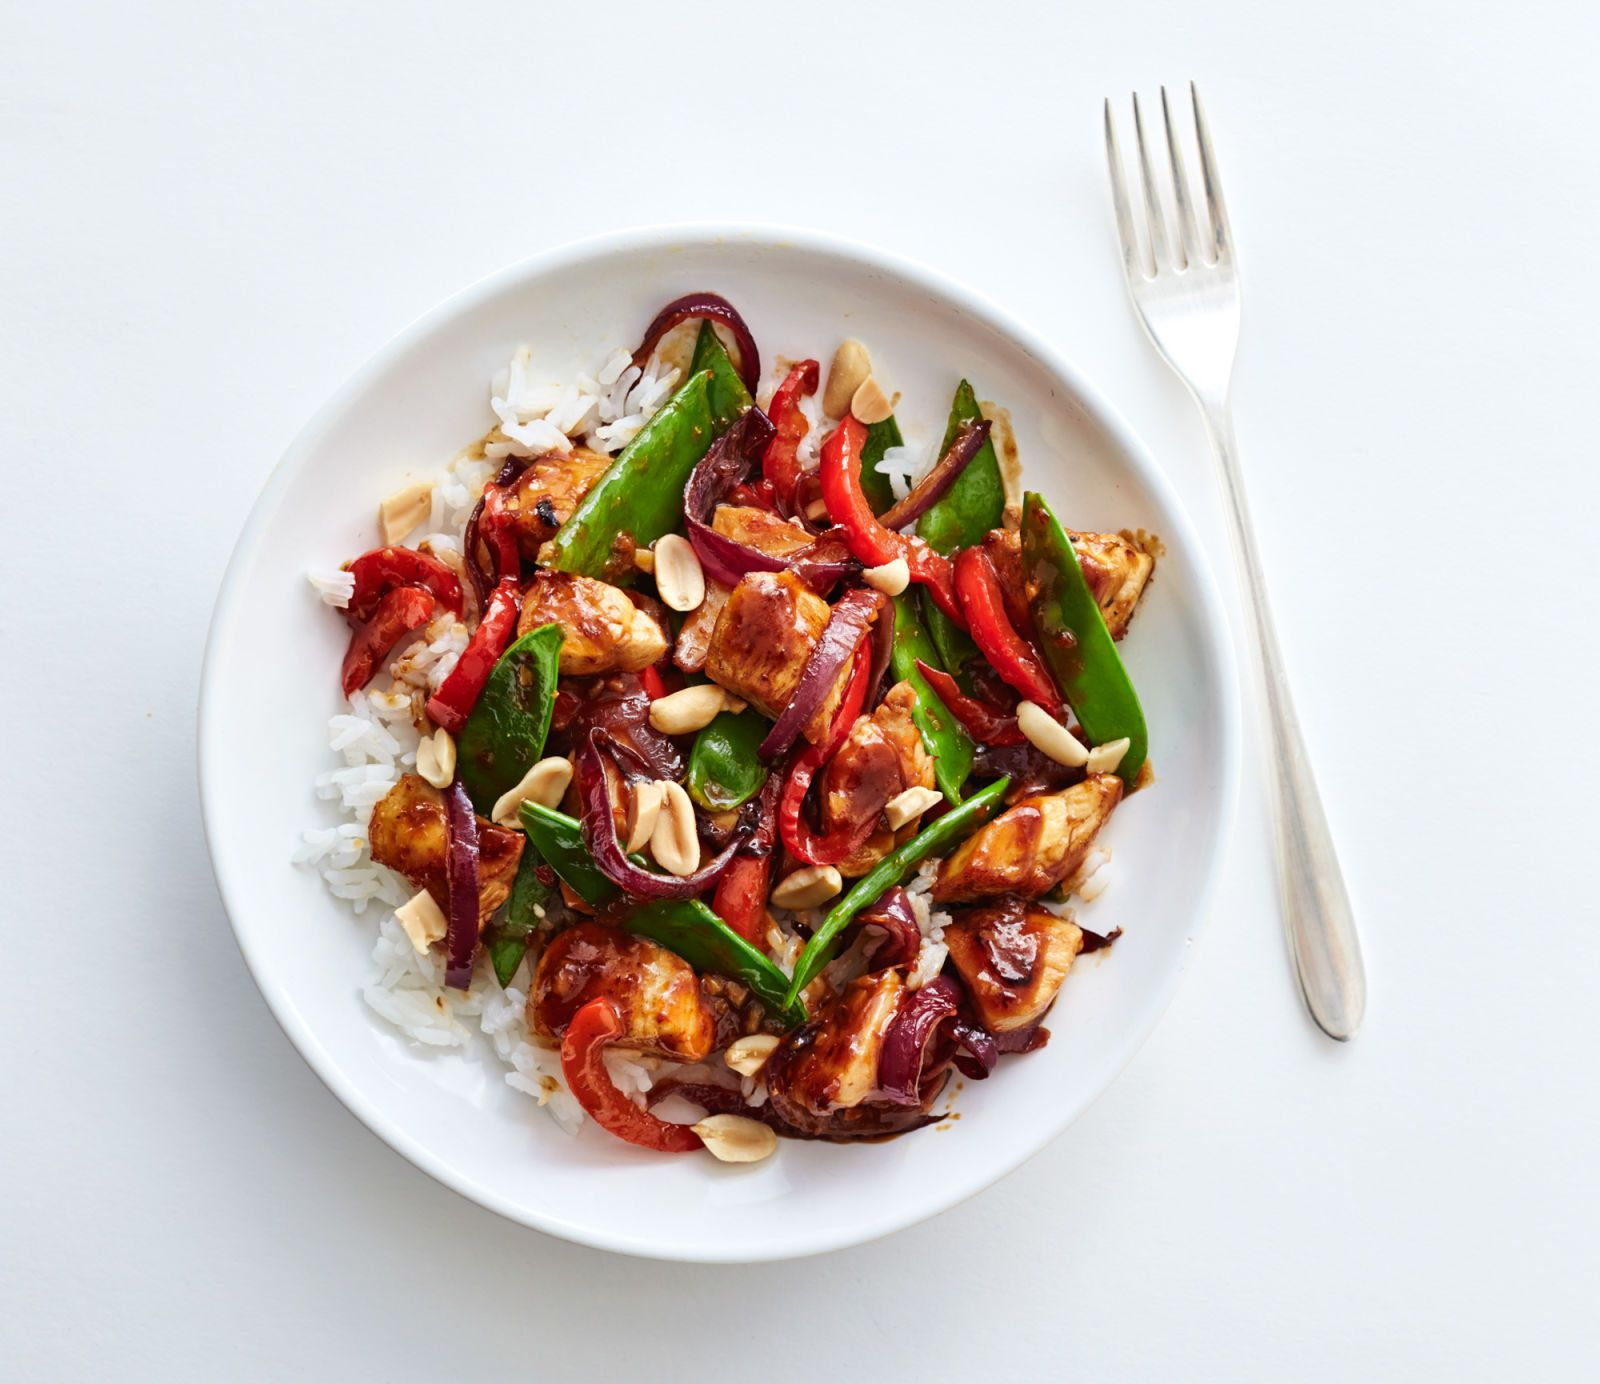 Emmys Kung Pao Chicken